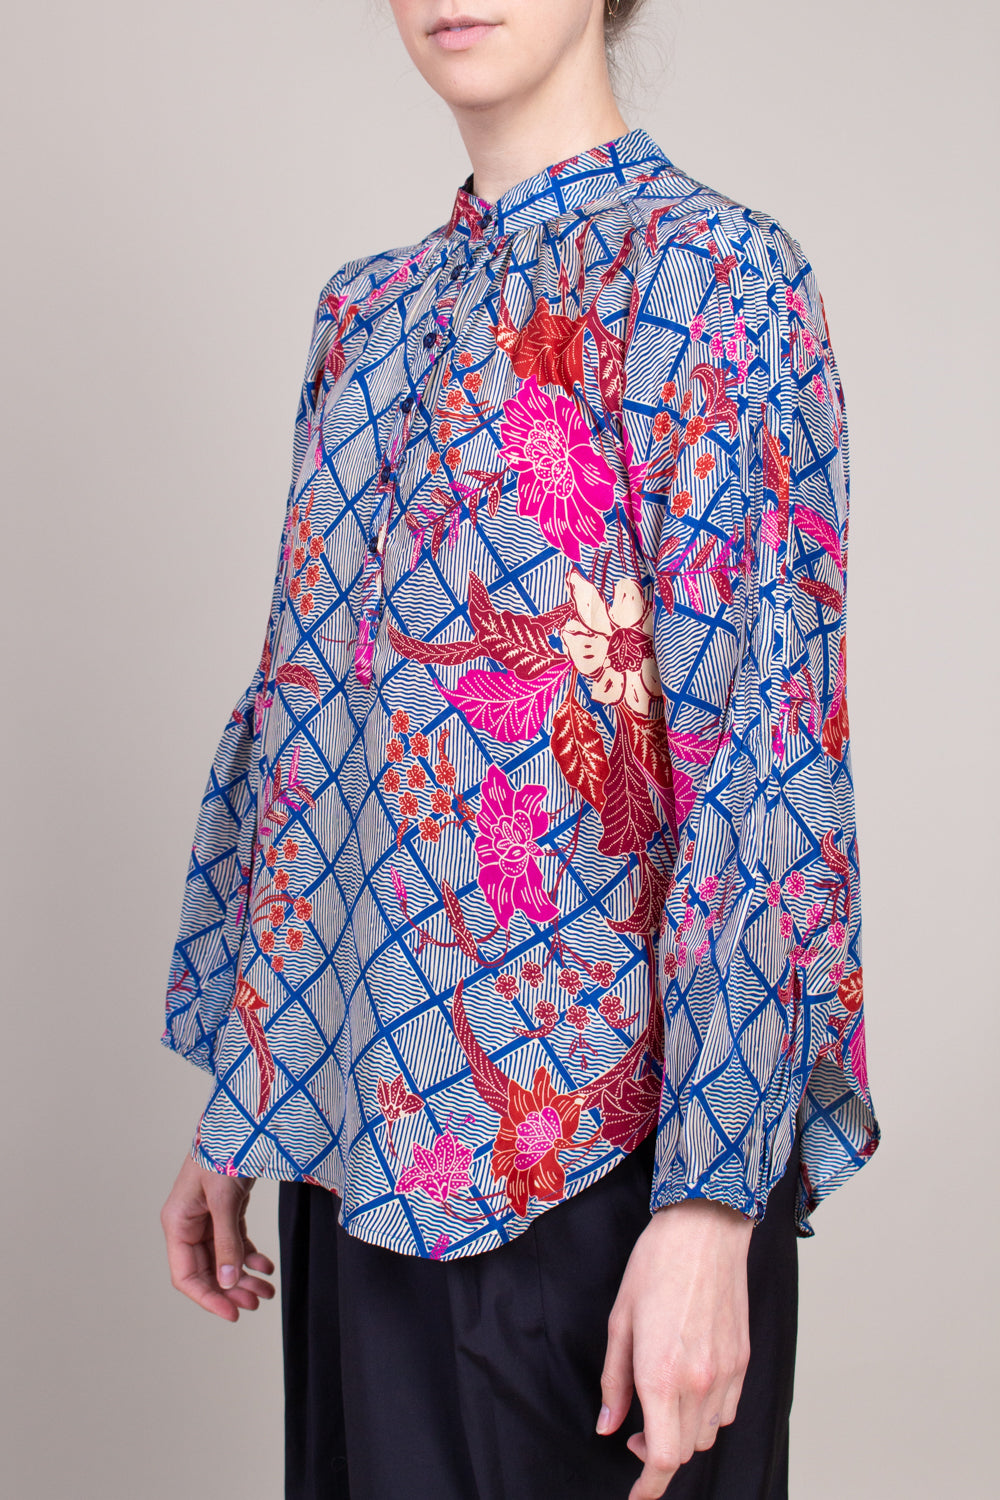 Apiece Apart Core Bravo Top in Indo Batik - Vert & Vogue